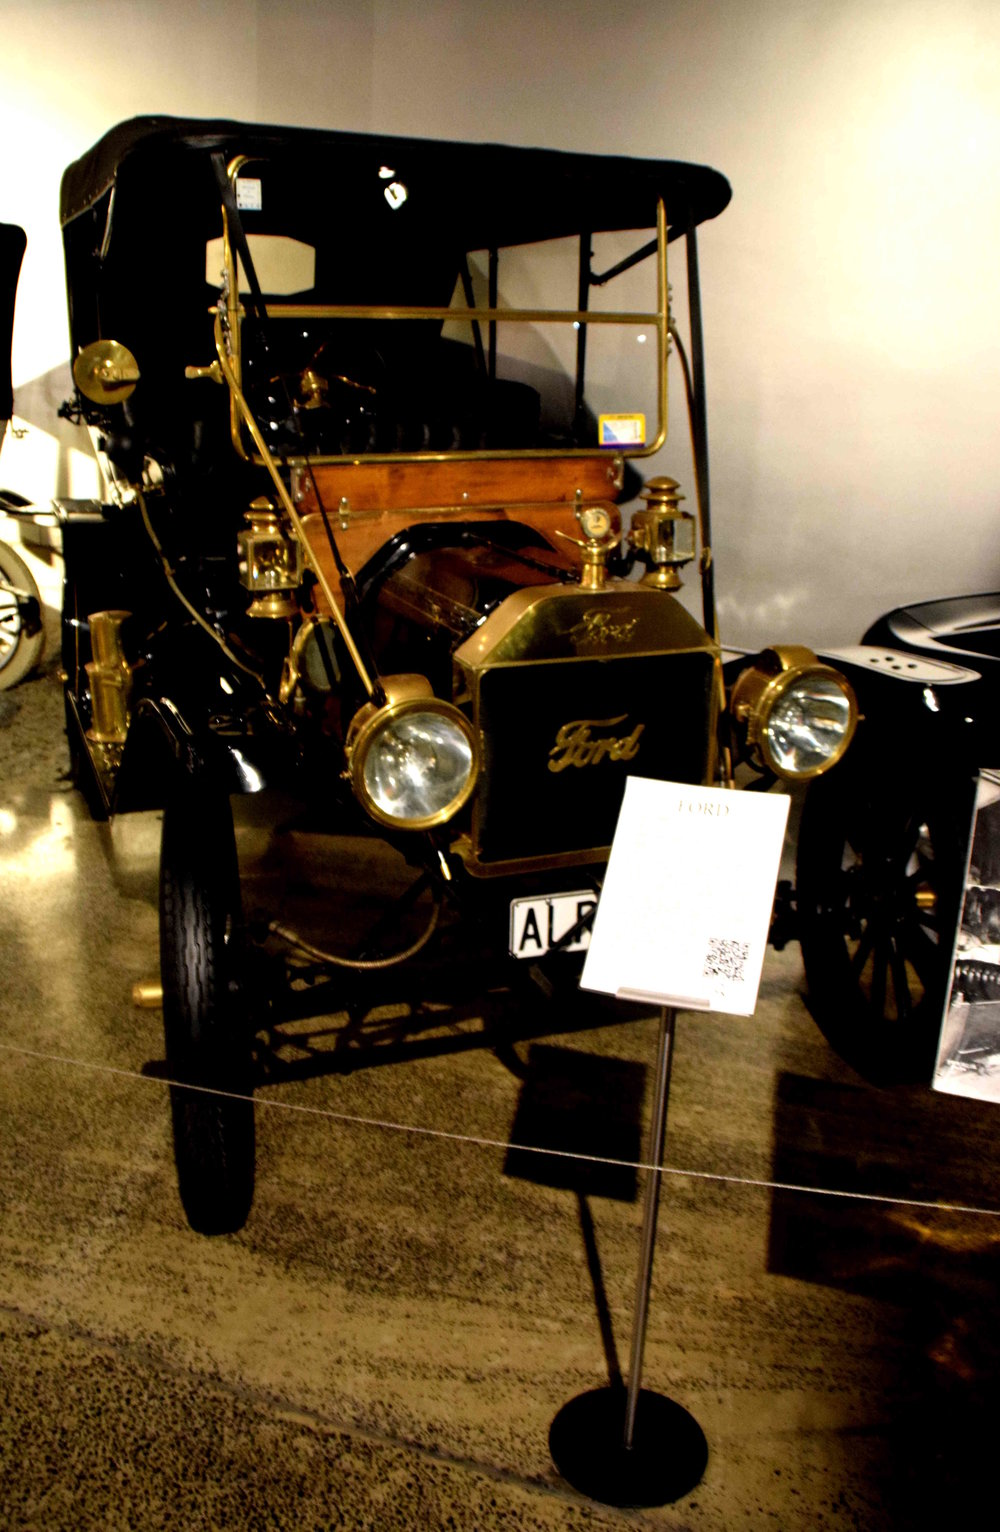 Ford Model T on display in the museum. First produced in 1908, it was the car which 'put America on wheels', as it was the first car to be built on a moving assembly line.